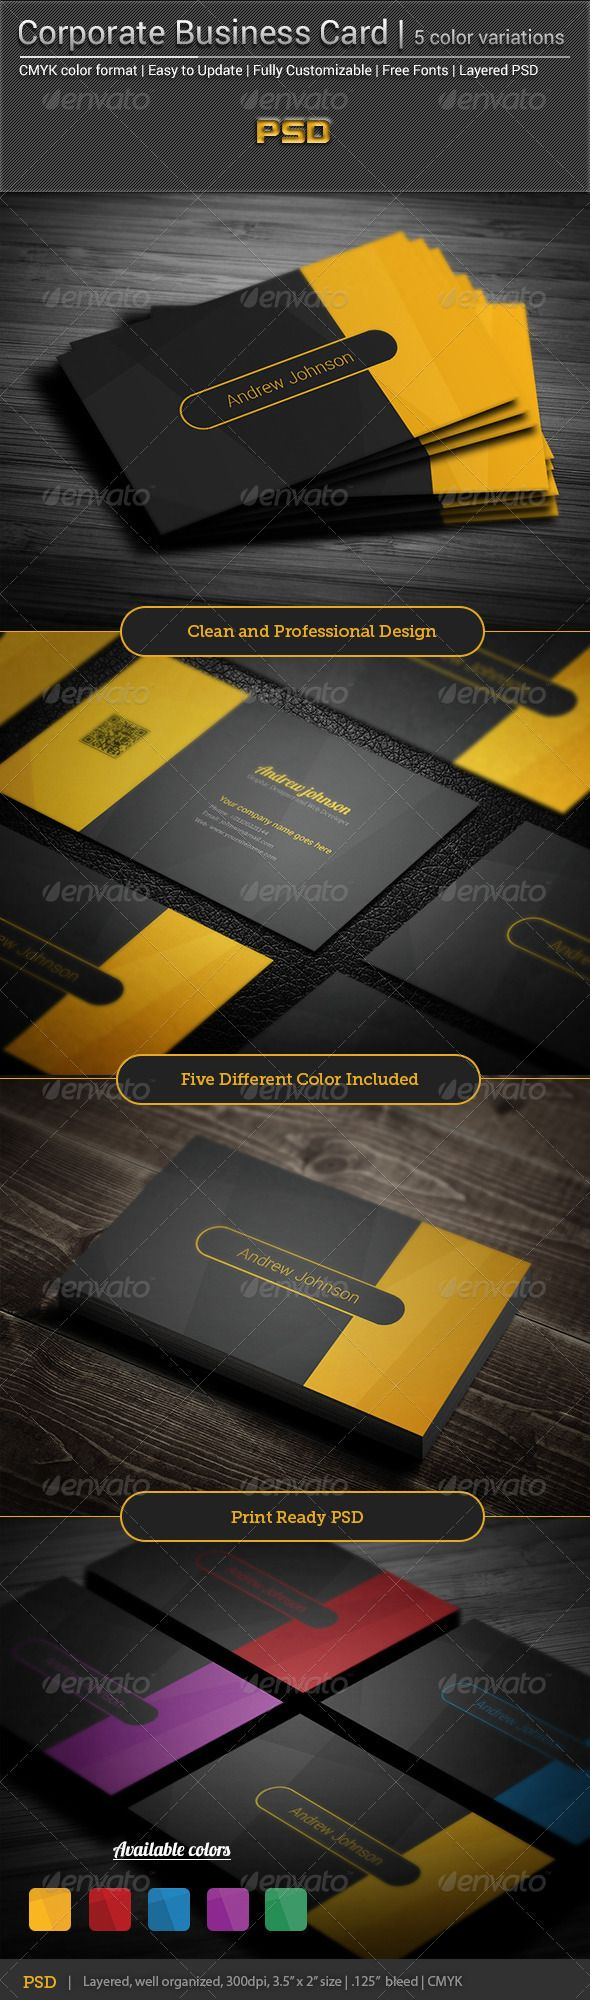 Business card printing free templates from nextdayflyers - Corporate Business Card Elegant V 2